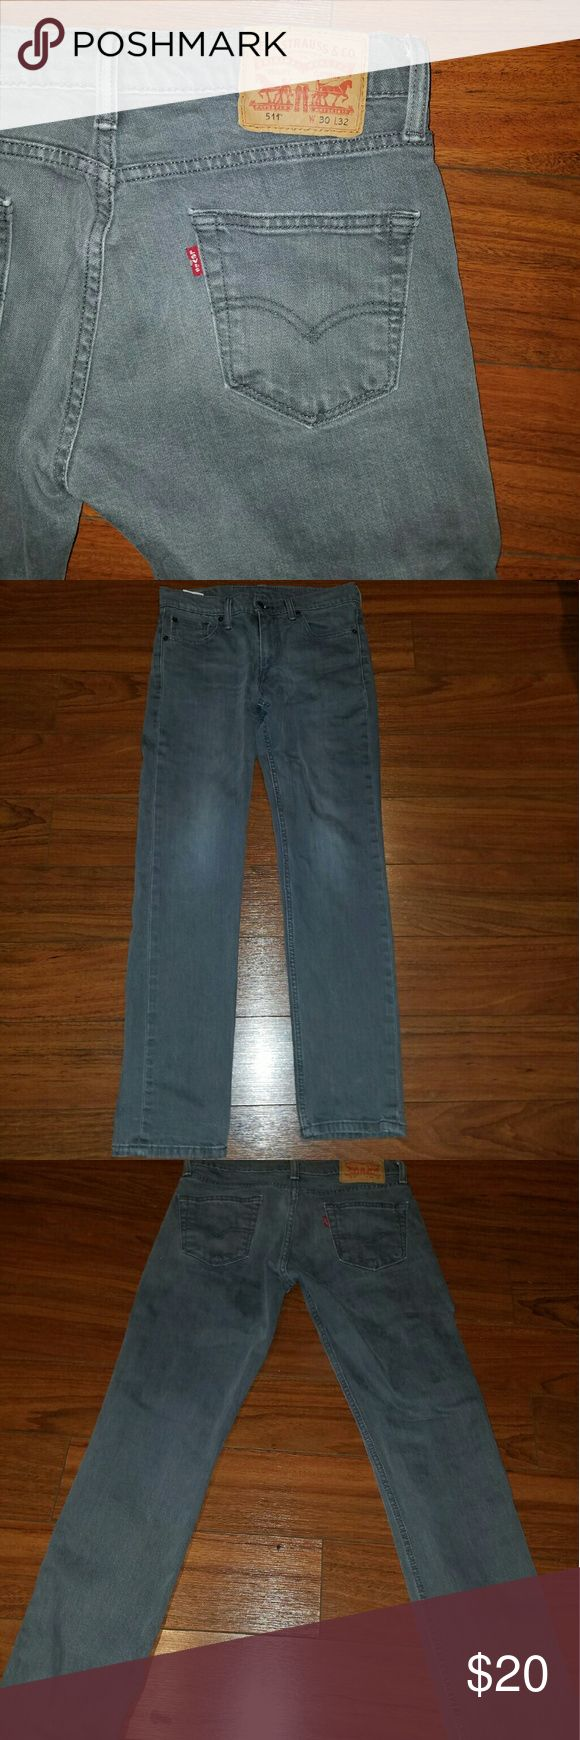 Mens 511 Levi Jeans Grey 511 Jeans  30W 33L Worn only a couple times Make an offer! Levis Jeans Slim